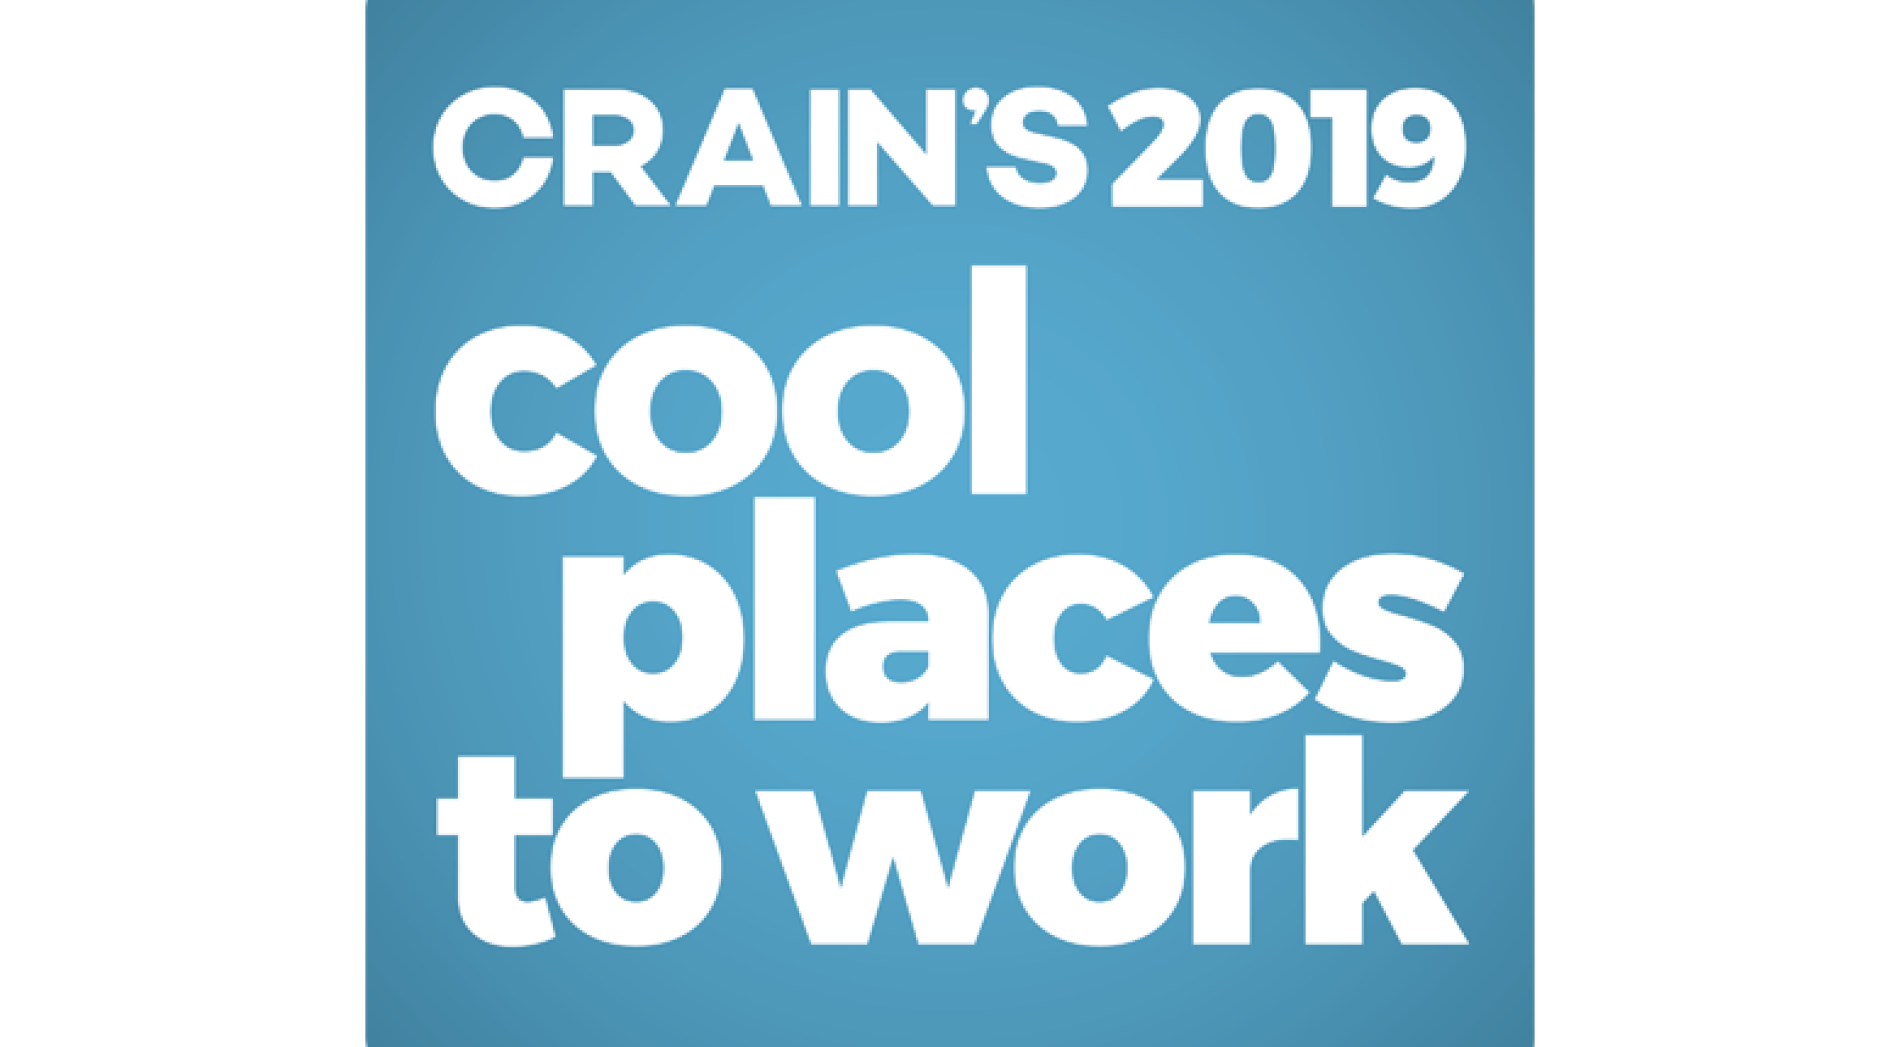 Crains Cool Places to Work 2019